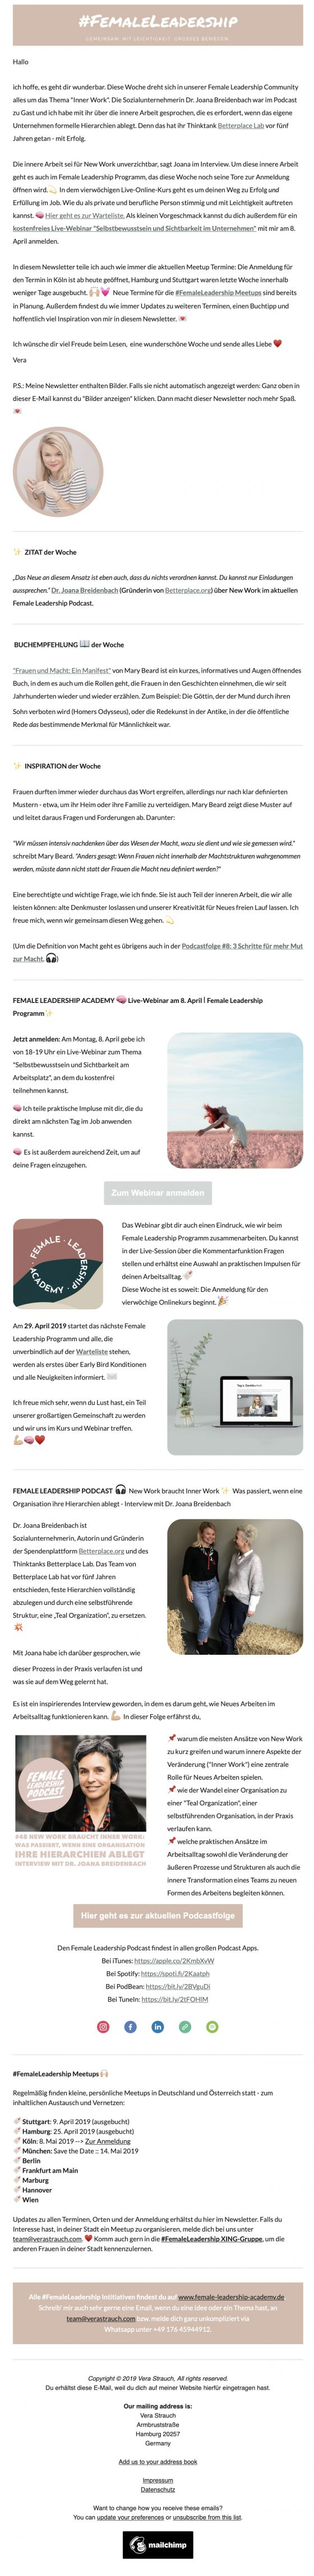 Female Leadership Newsletter Vorschau lang